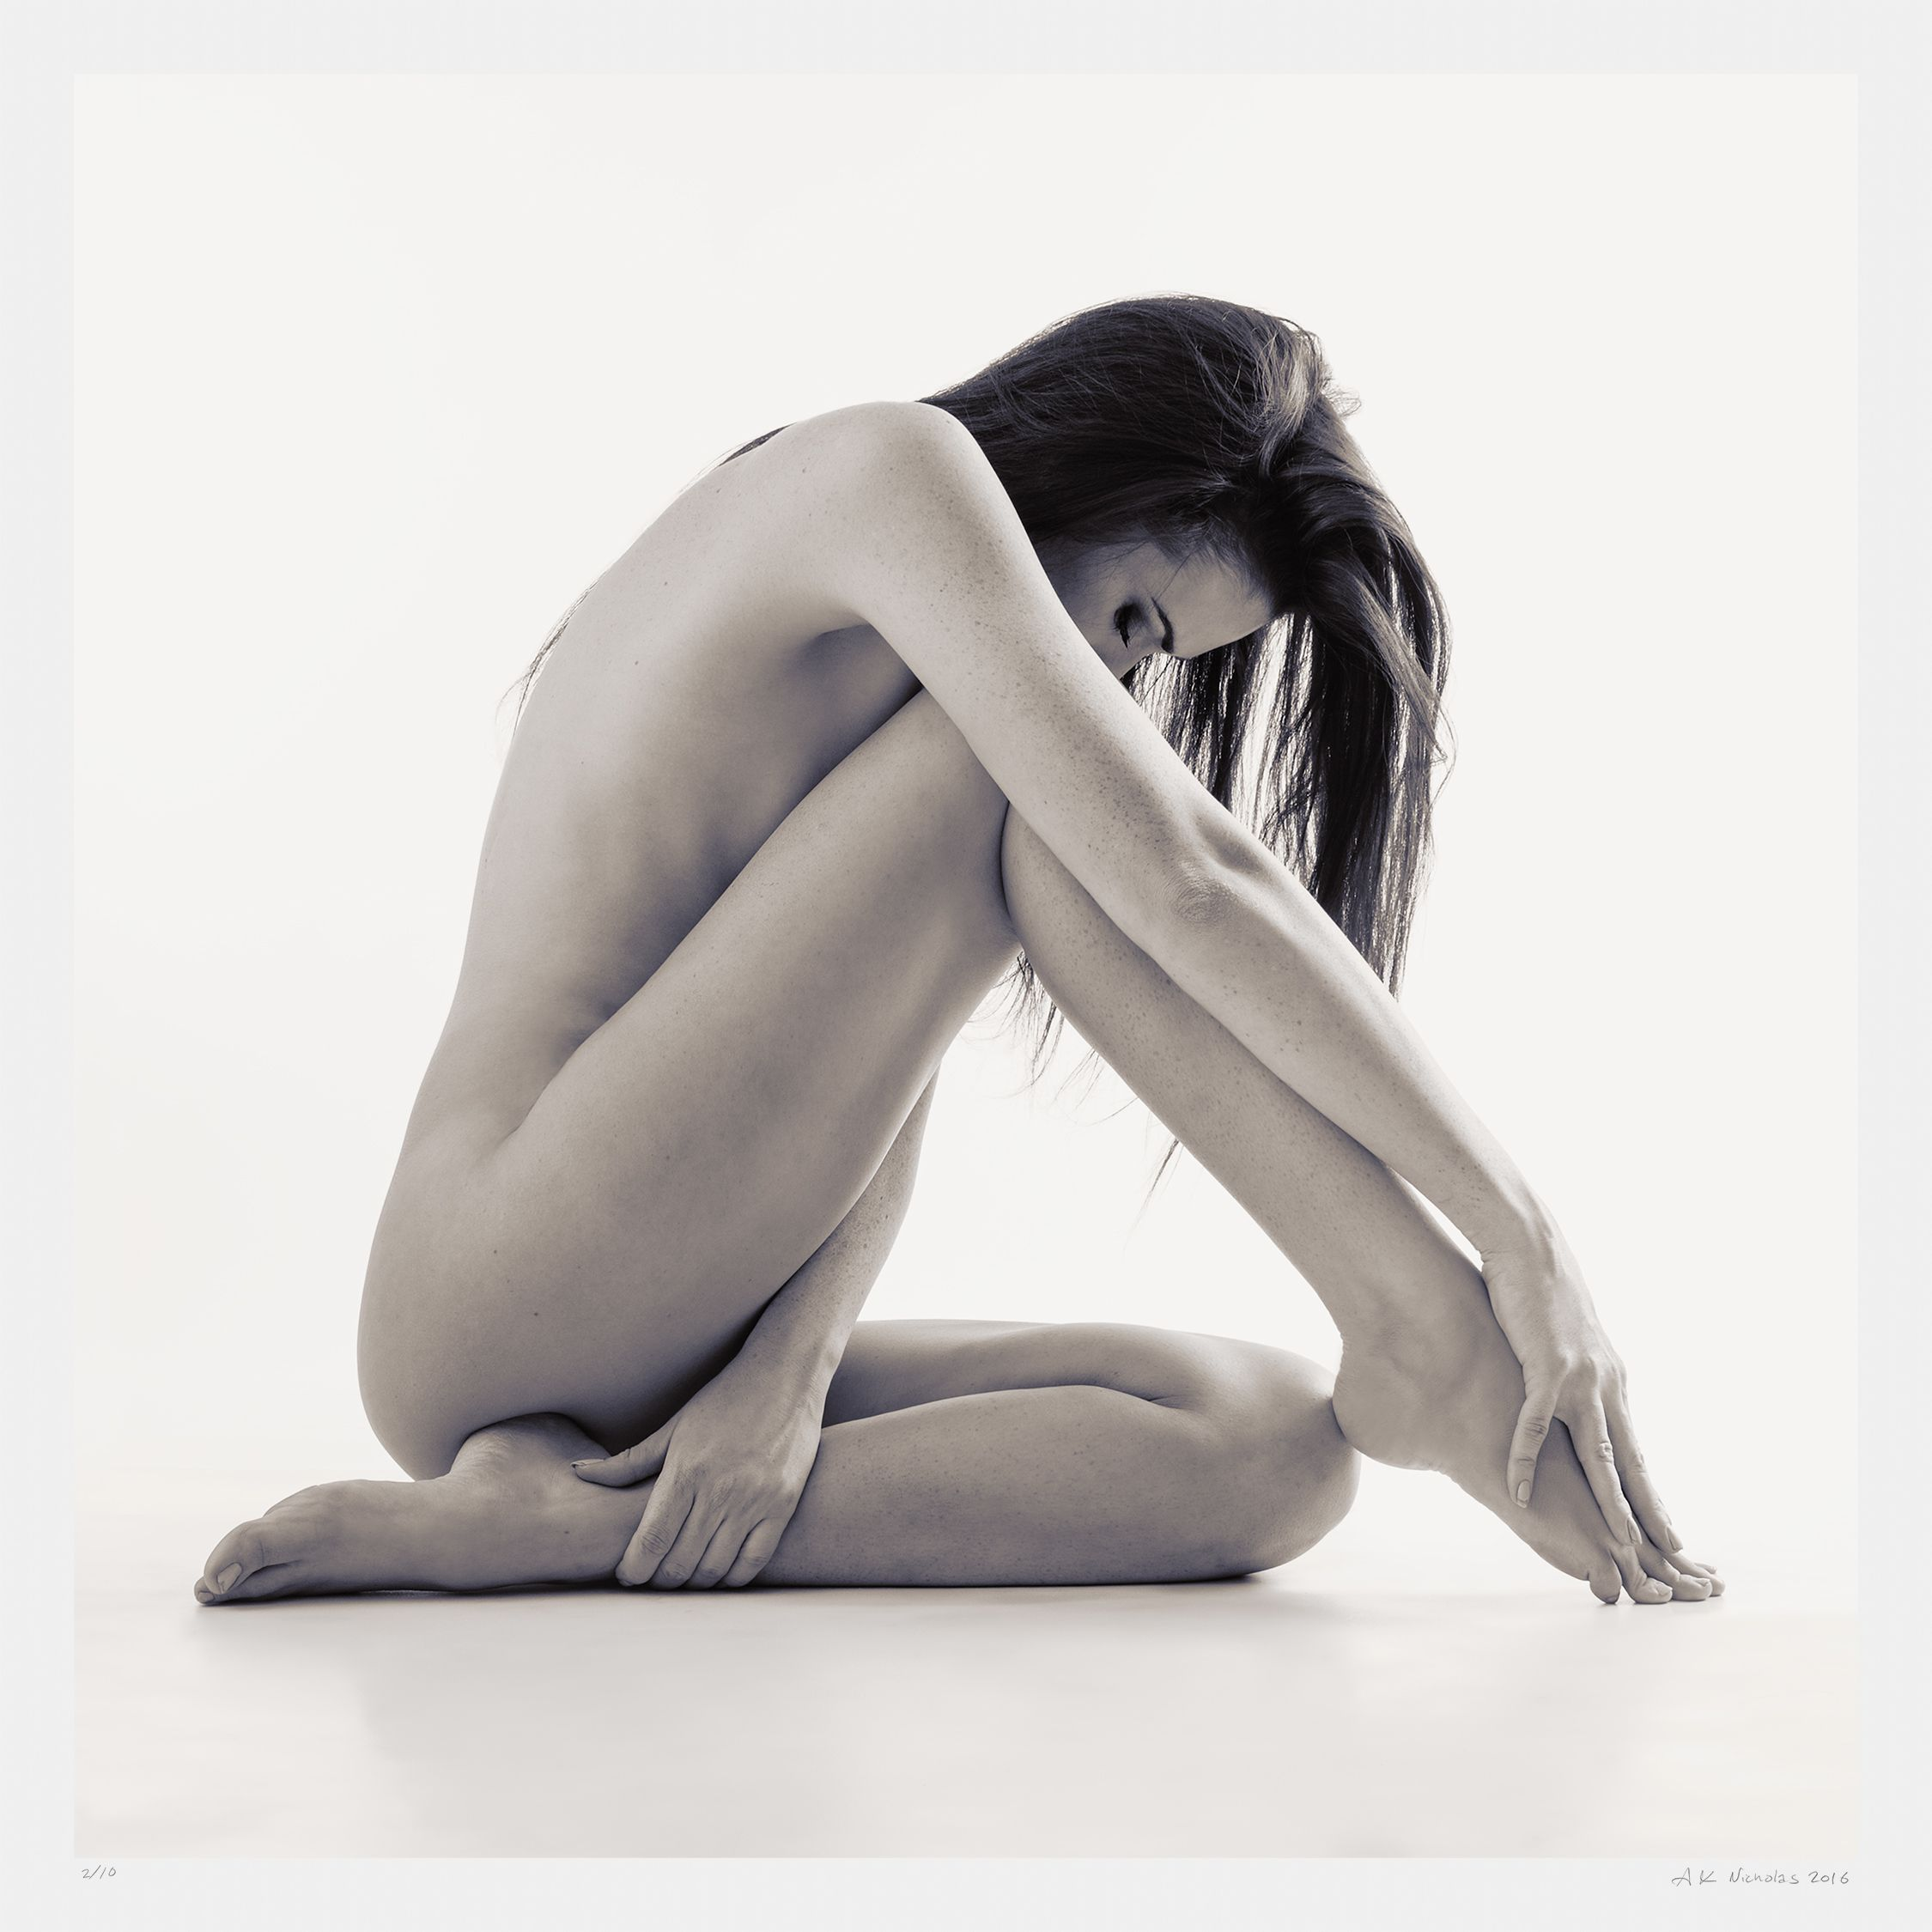 Nude photography line-up